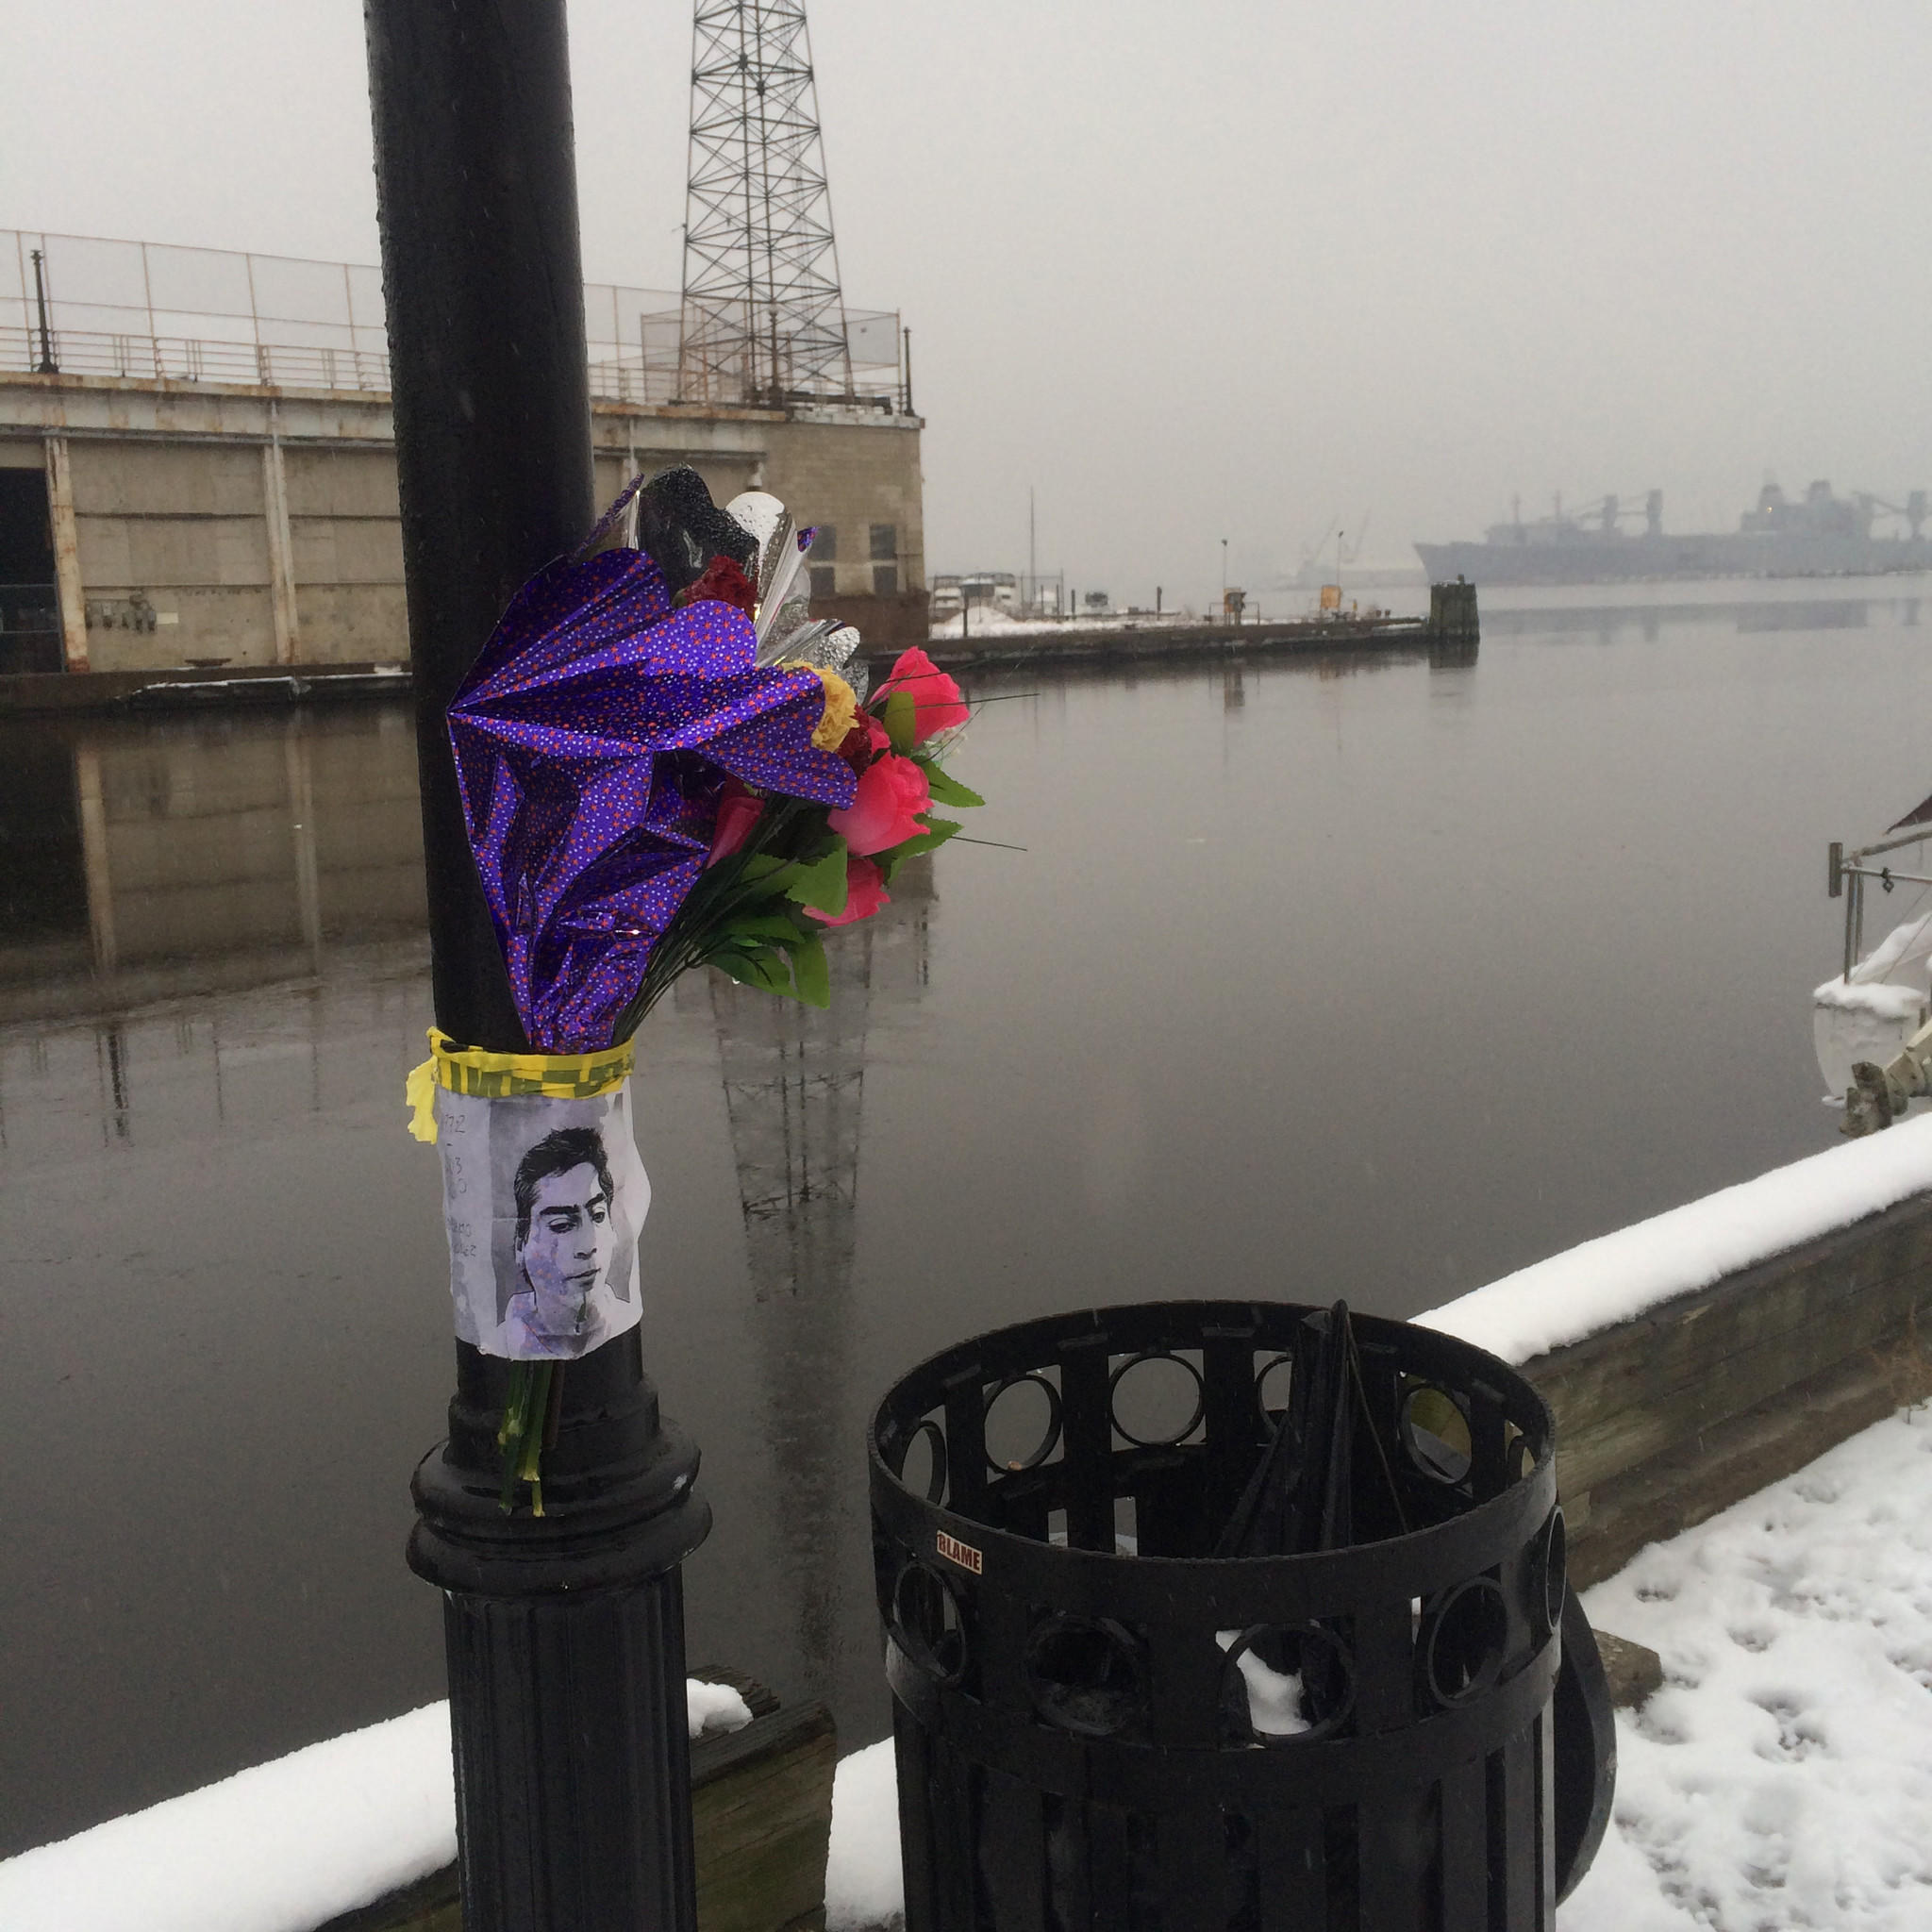 A reader-submitted photo shows a memorial set up for Robert Gomez, who was found floating in the water.